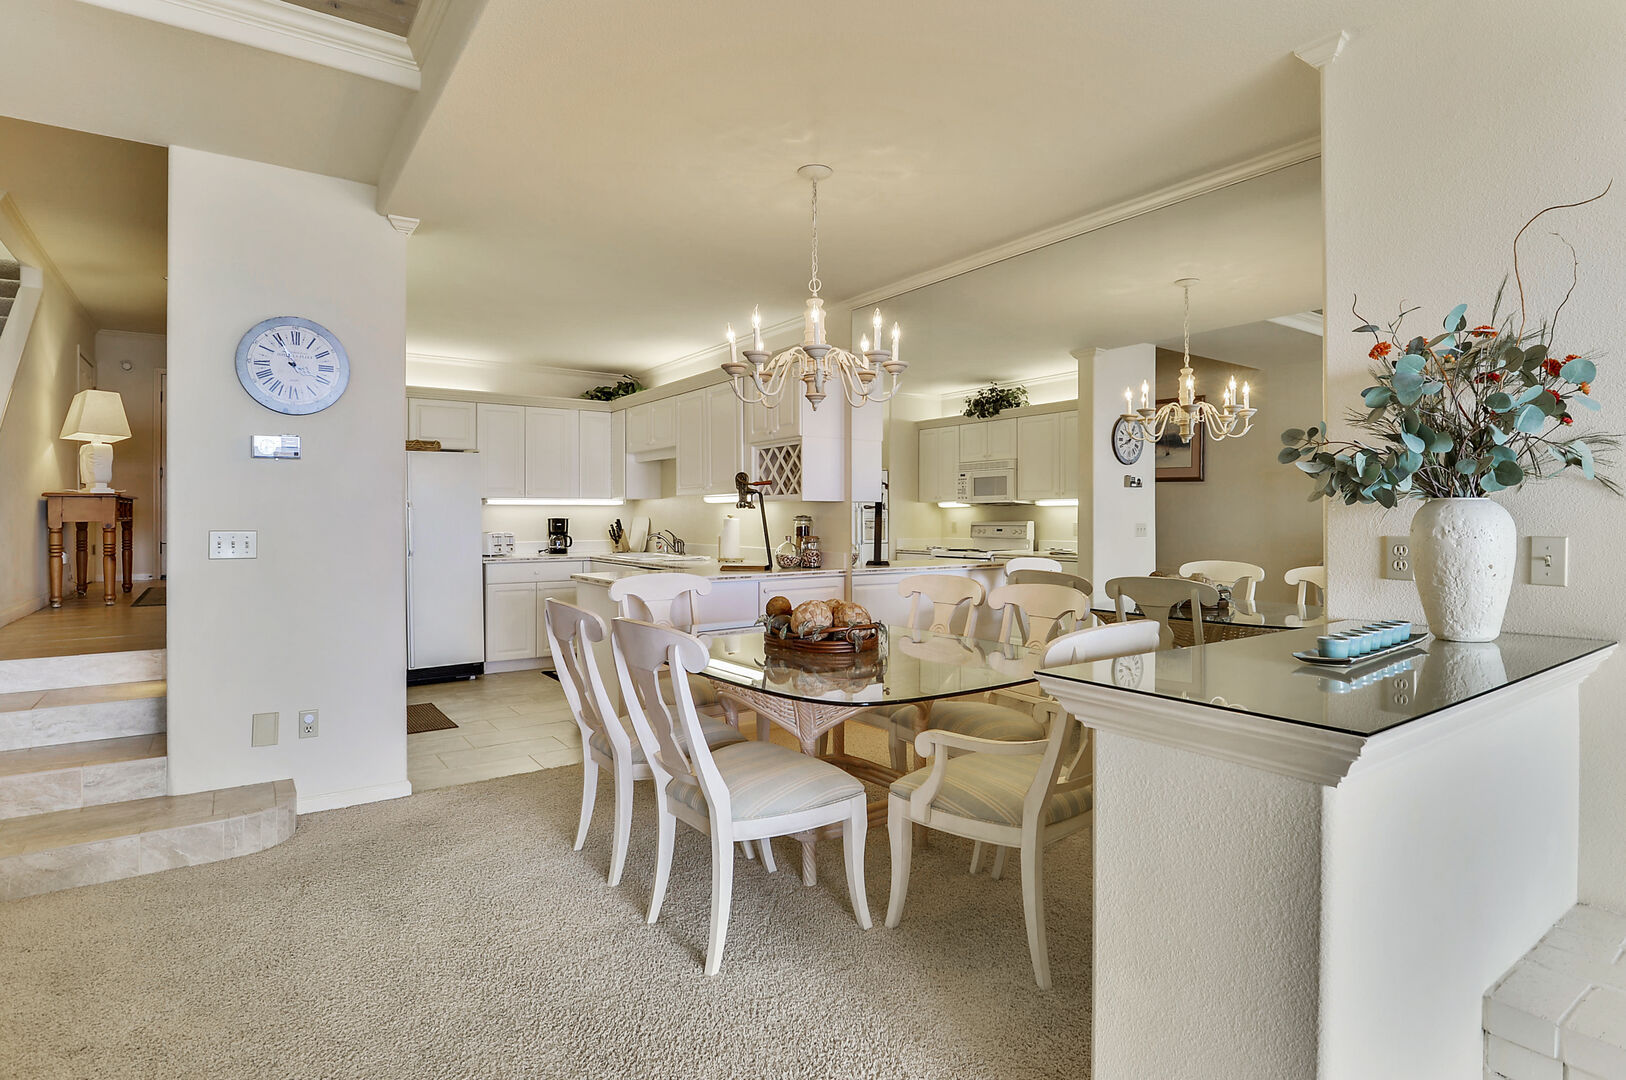 Dining Table, Chairs, Vase, Ceiling Lamp, and the Kitchen.